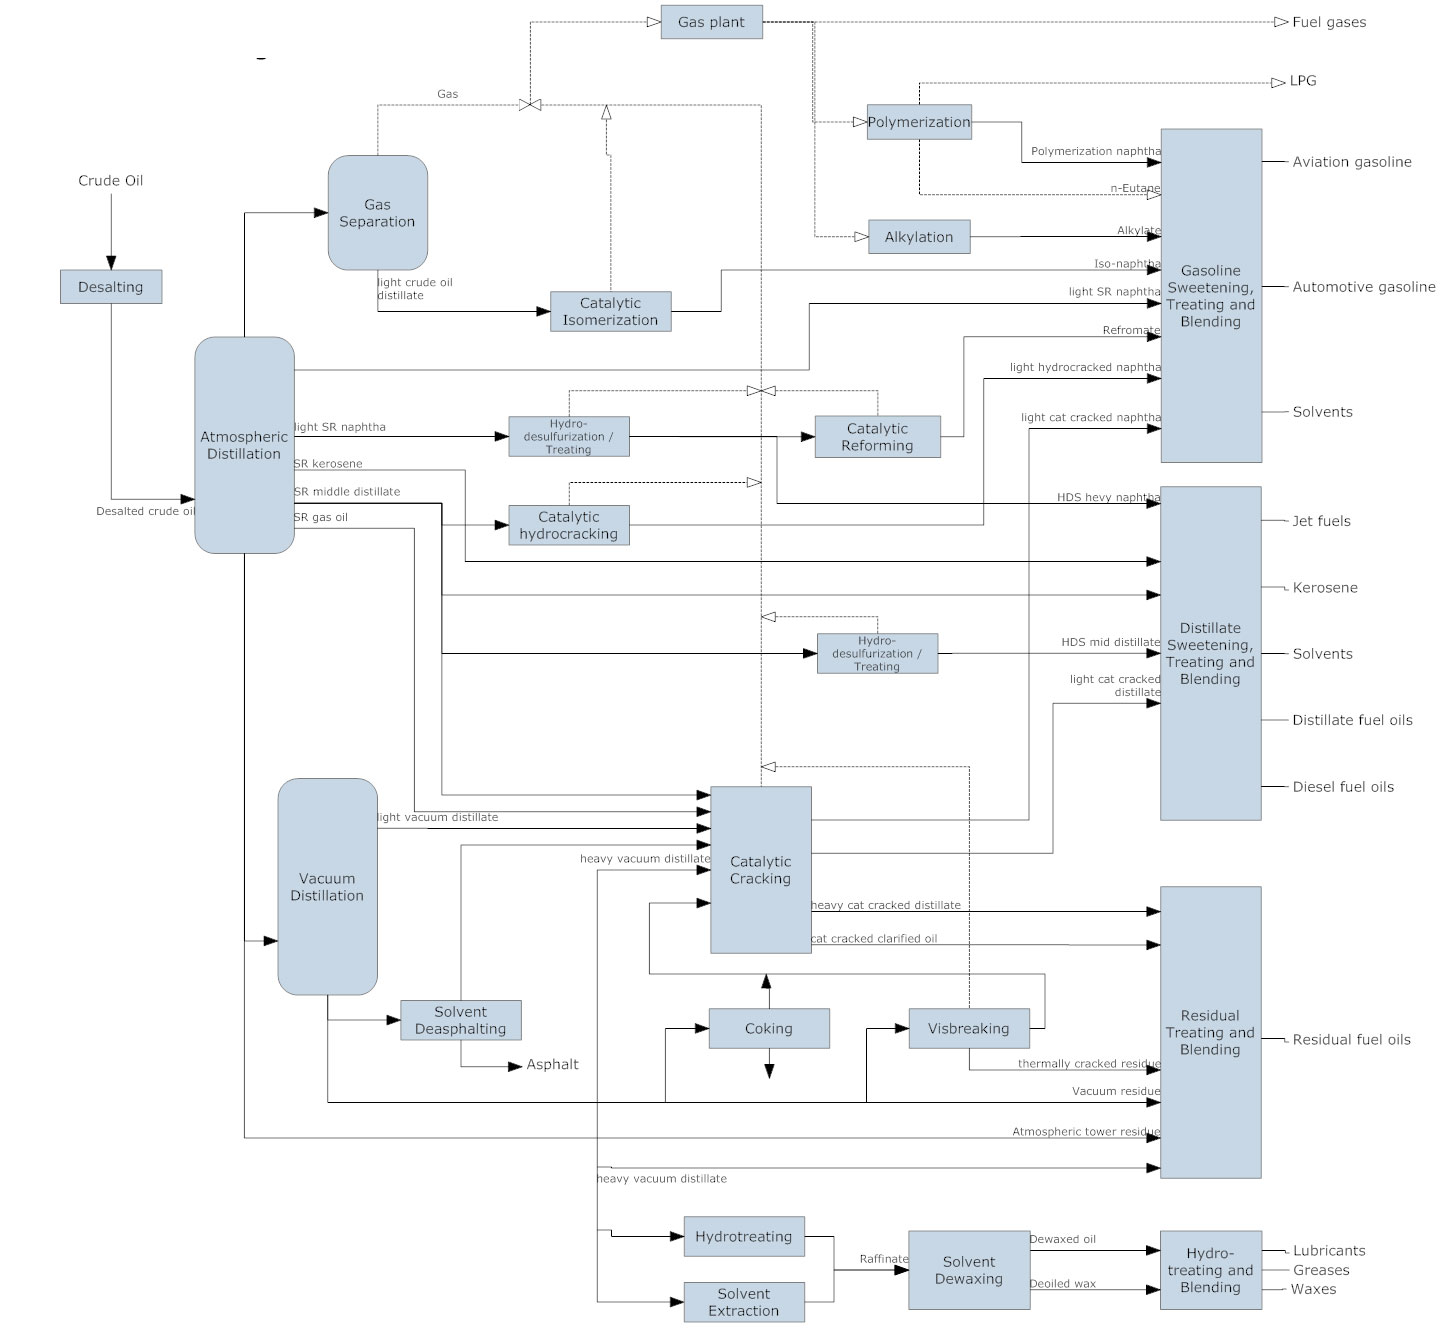 flowchart types and flowchart uses rh smartdraw com kinds of process flow diagram types of business process flow diagrams